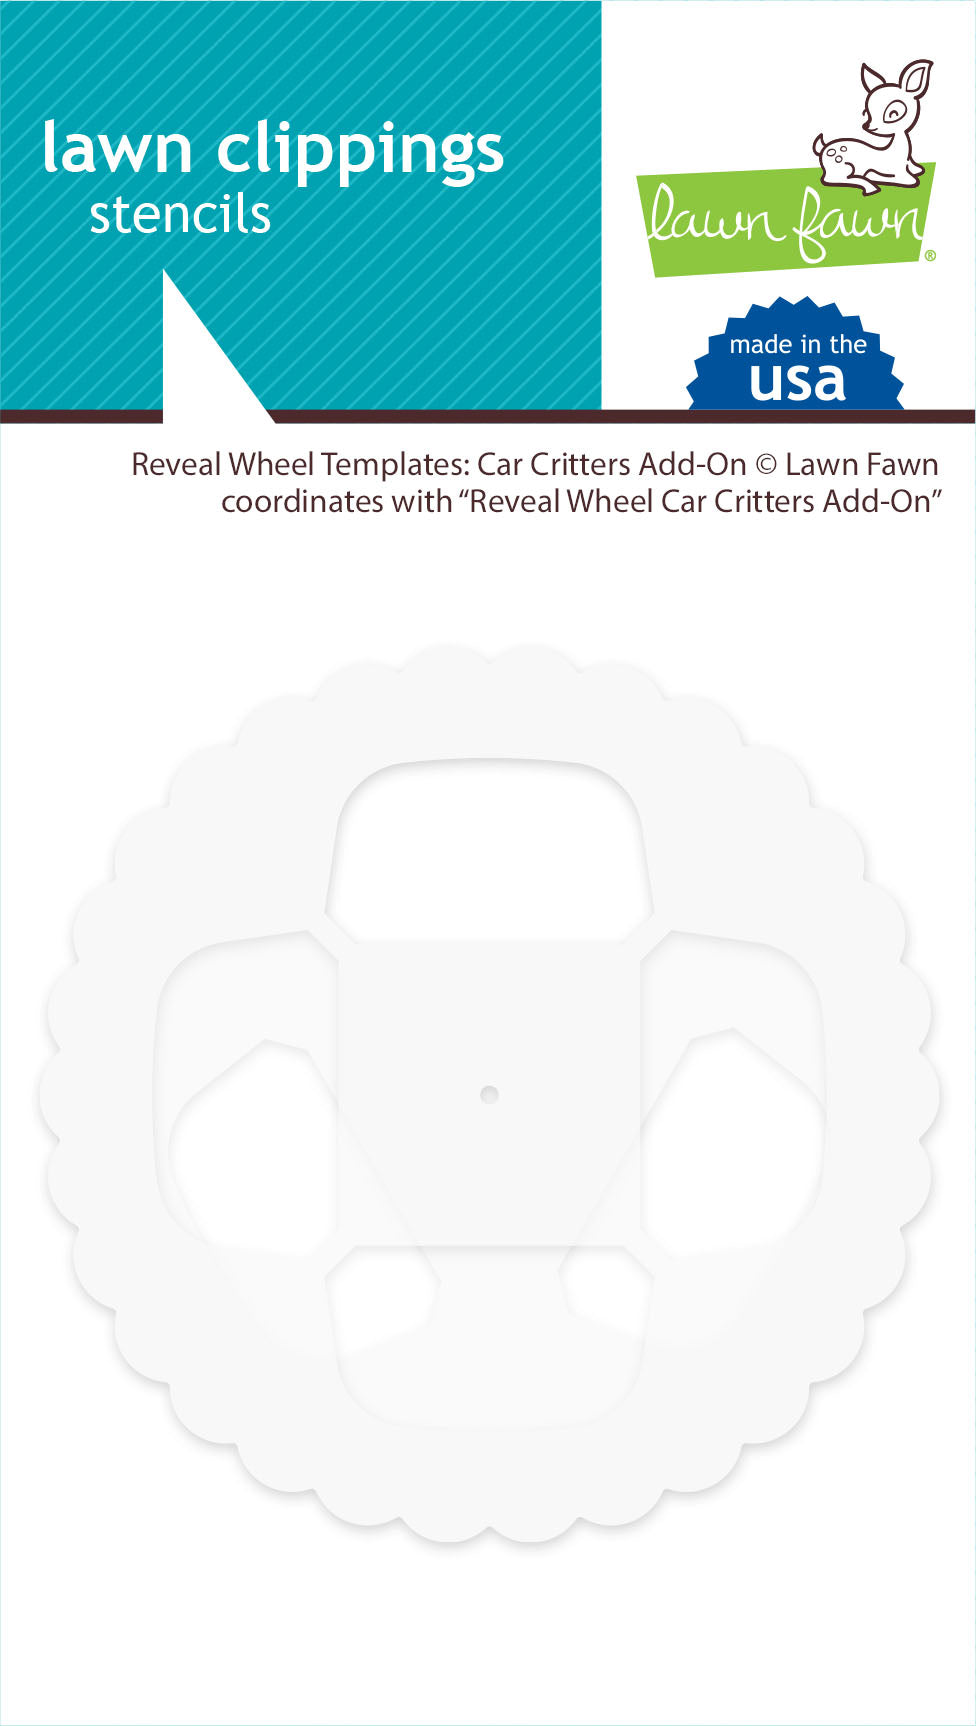 reveal wheel templates: car critters add-on